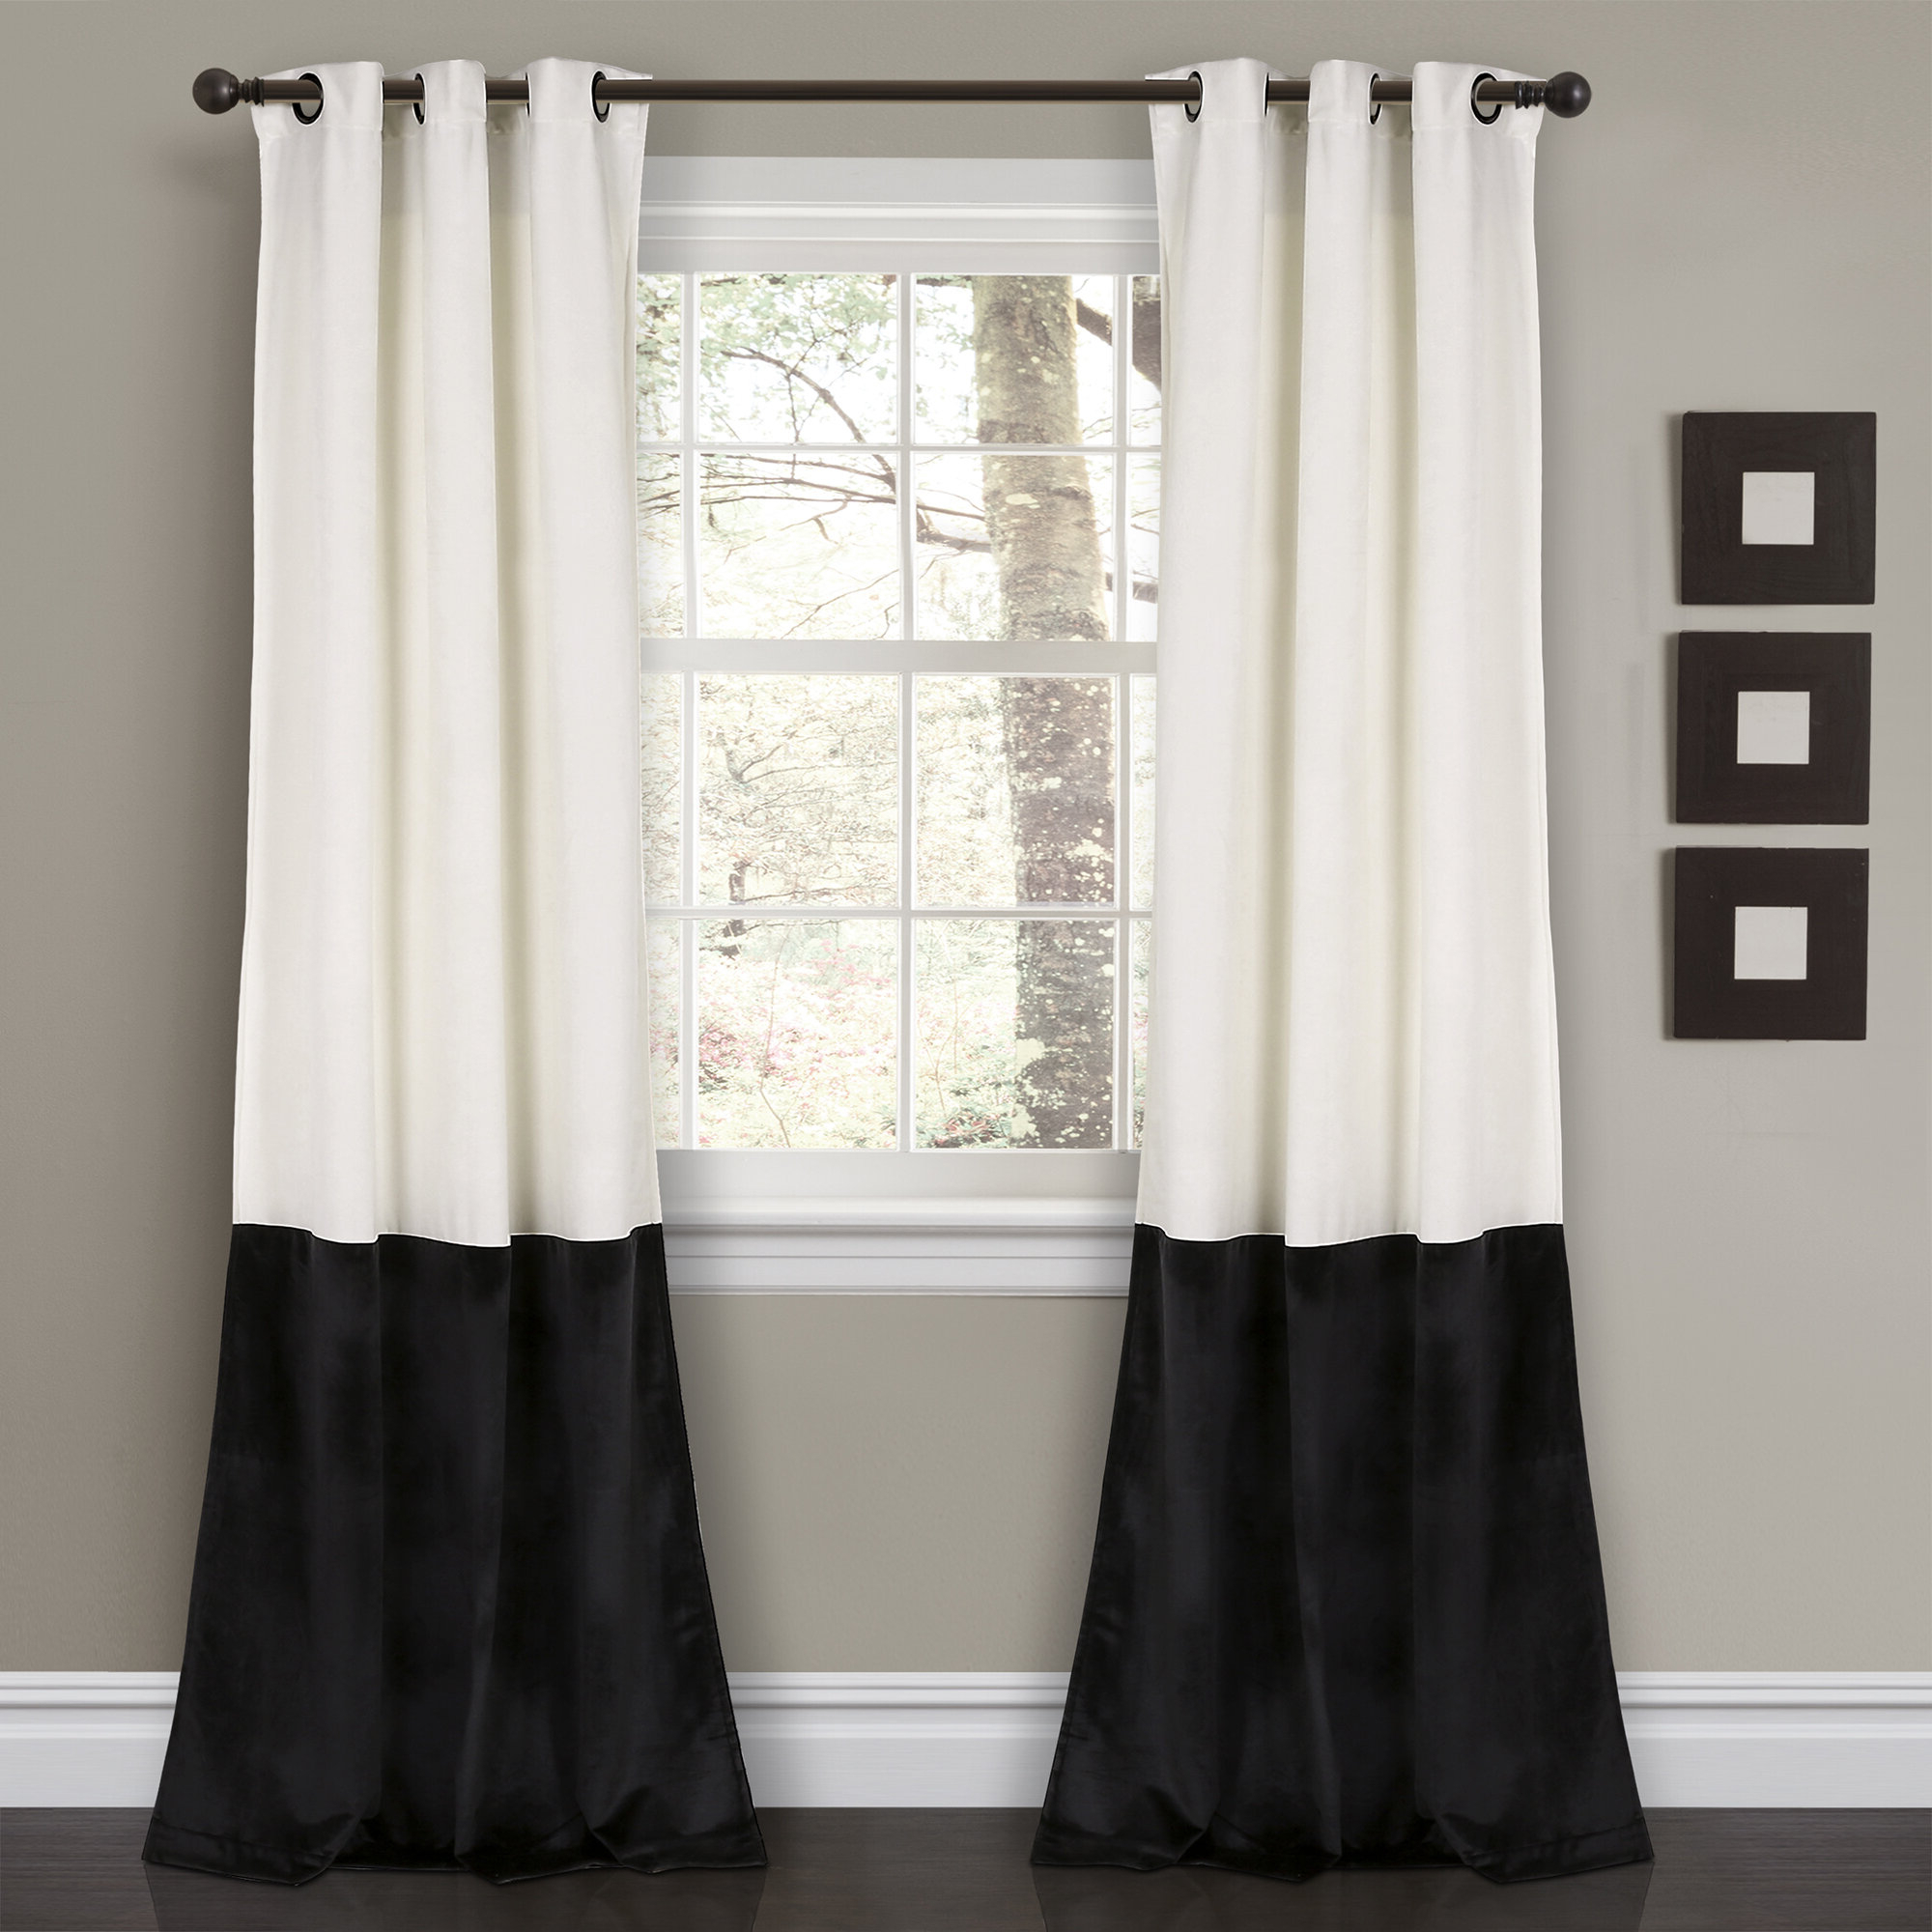 Grommet Room Darkening Curtain Panels Intended For Fashionable Lucille Floral Solid Color Room Darkening Thermal Grommet Curtain Panels (View 20 of 20)